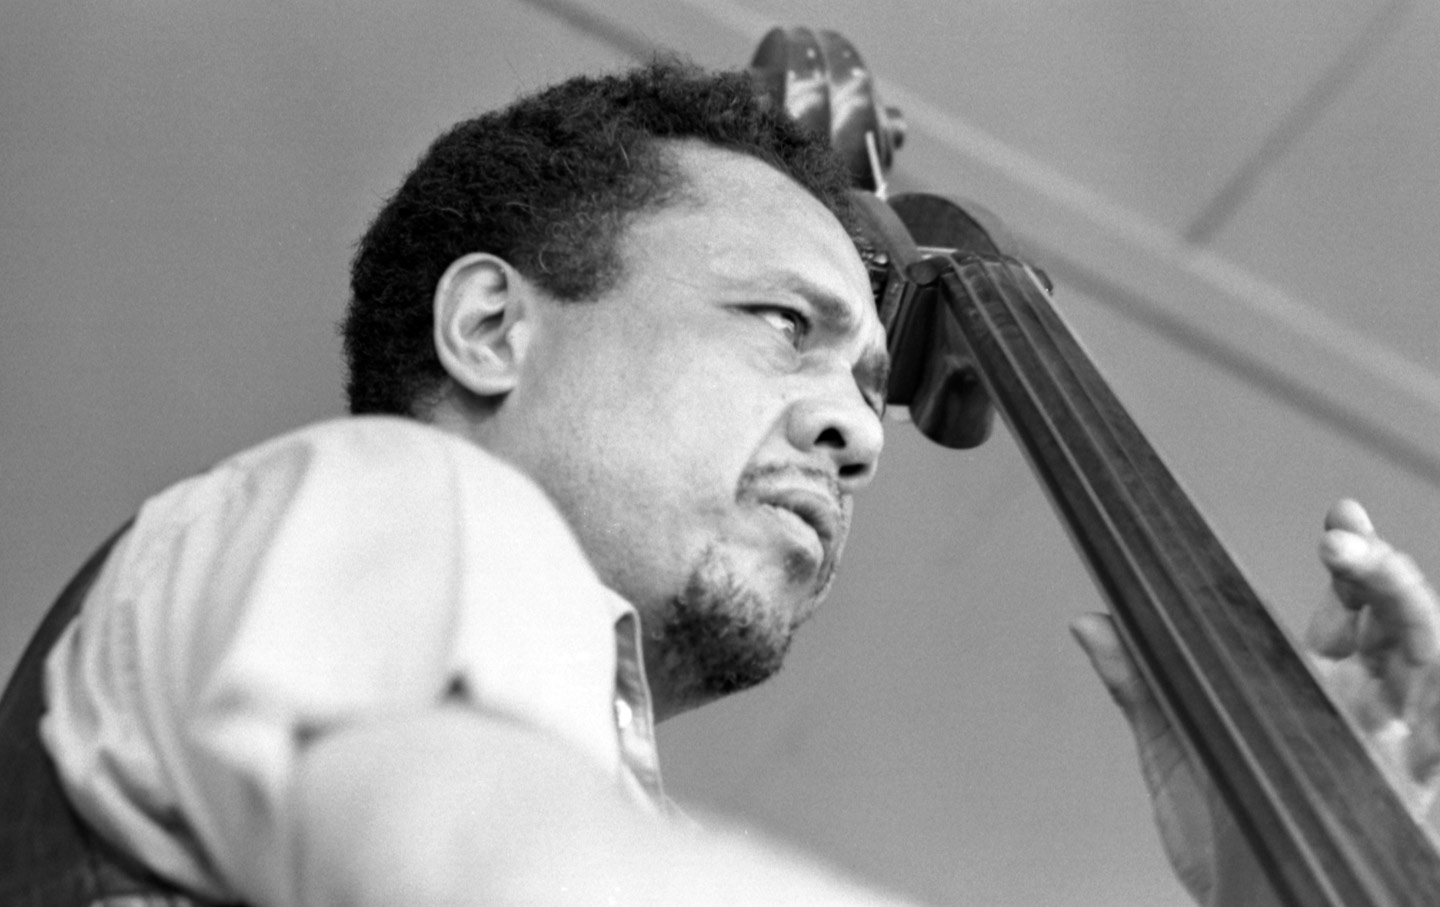 An Argument With Instruments: On Charles Mingus